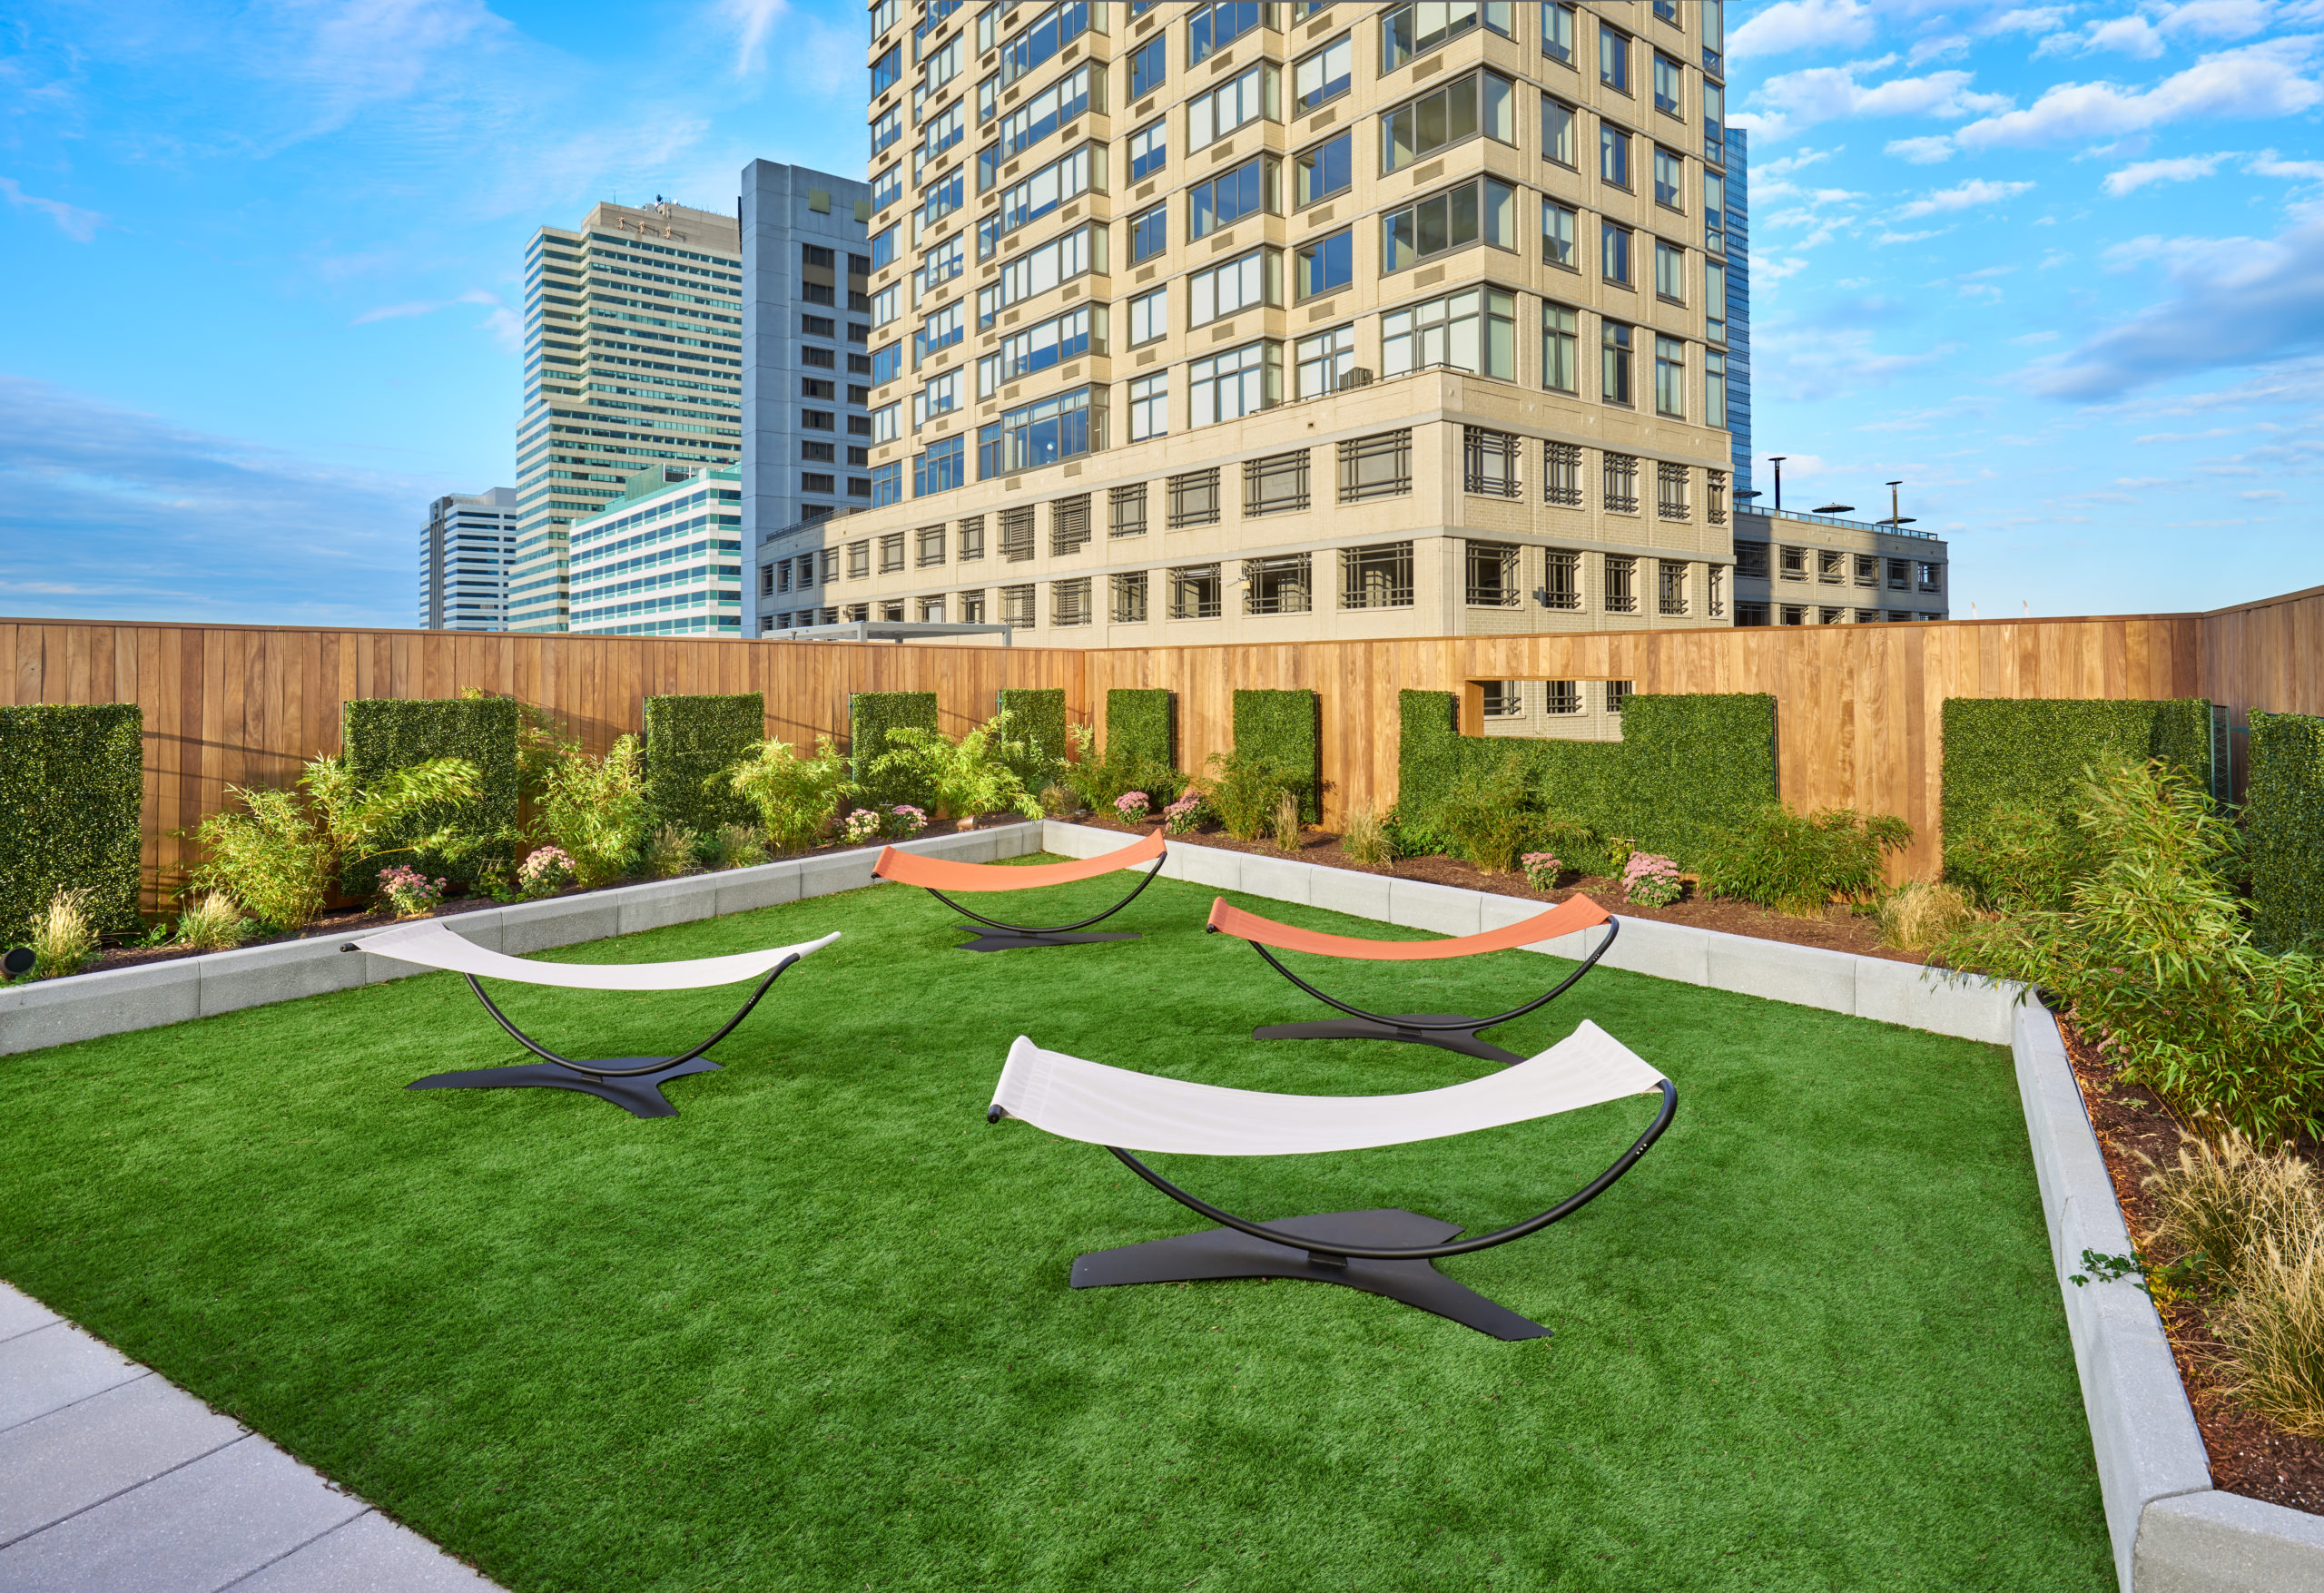 vyv south roof deck lounge area